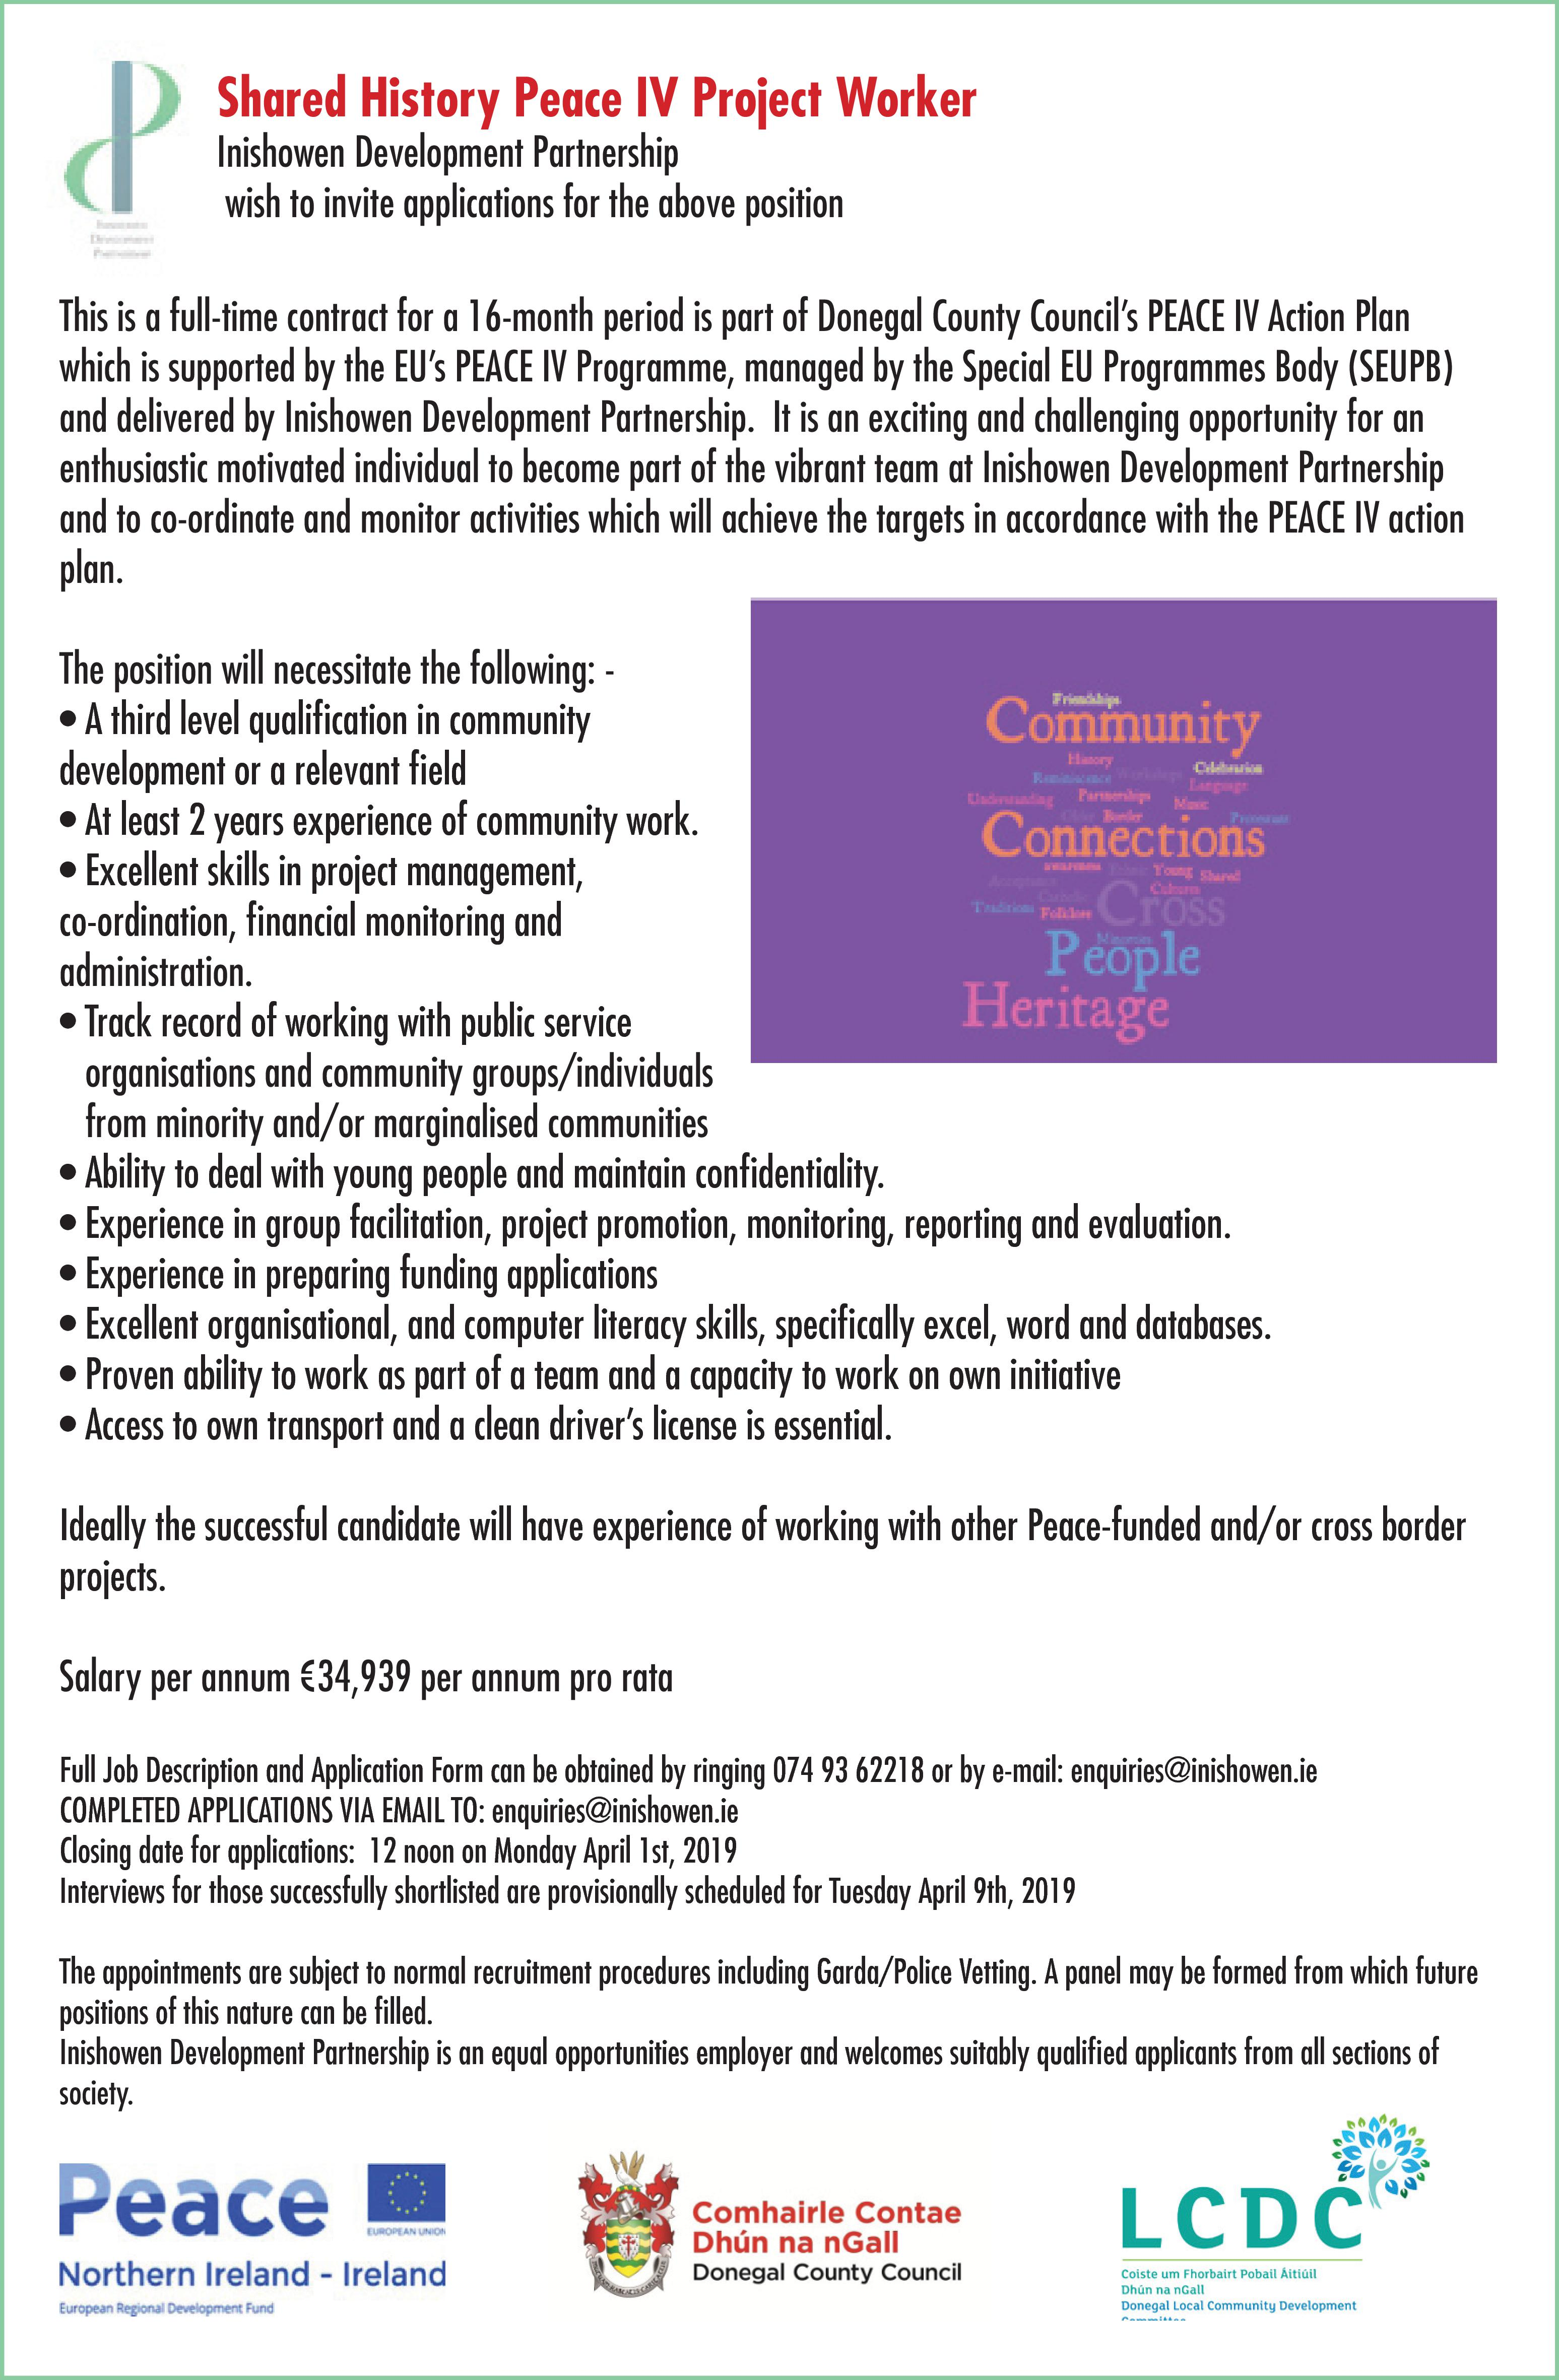 Shared History Peace IV Project Worker - Inishowen development